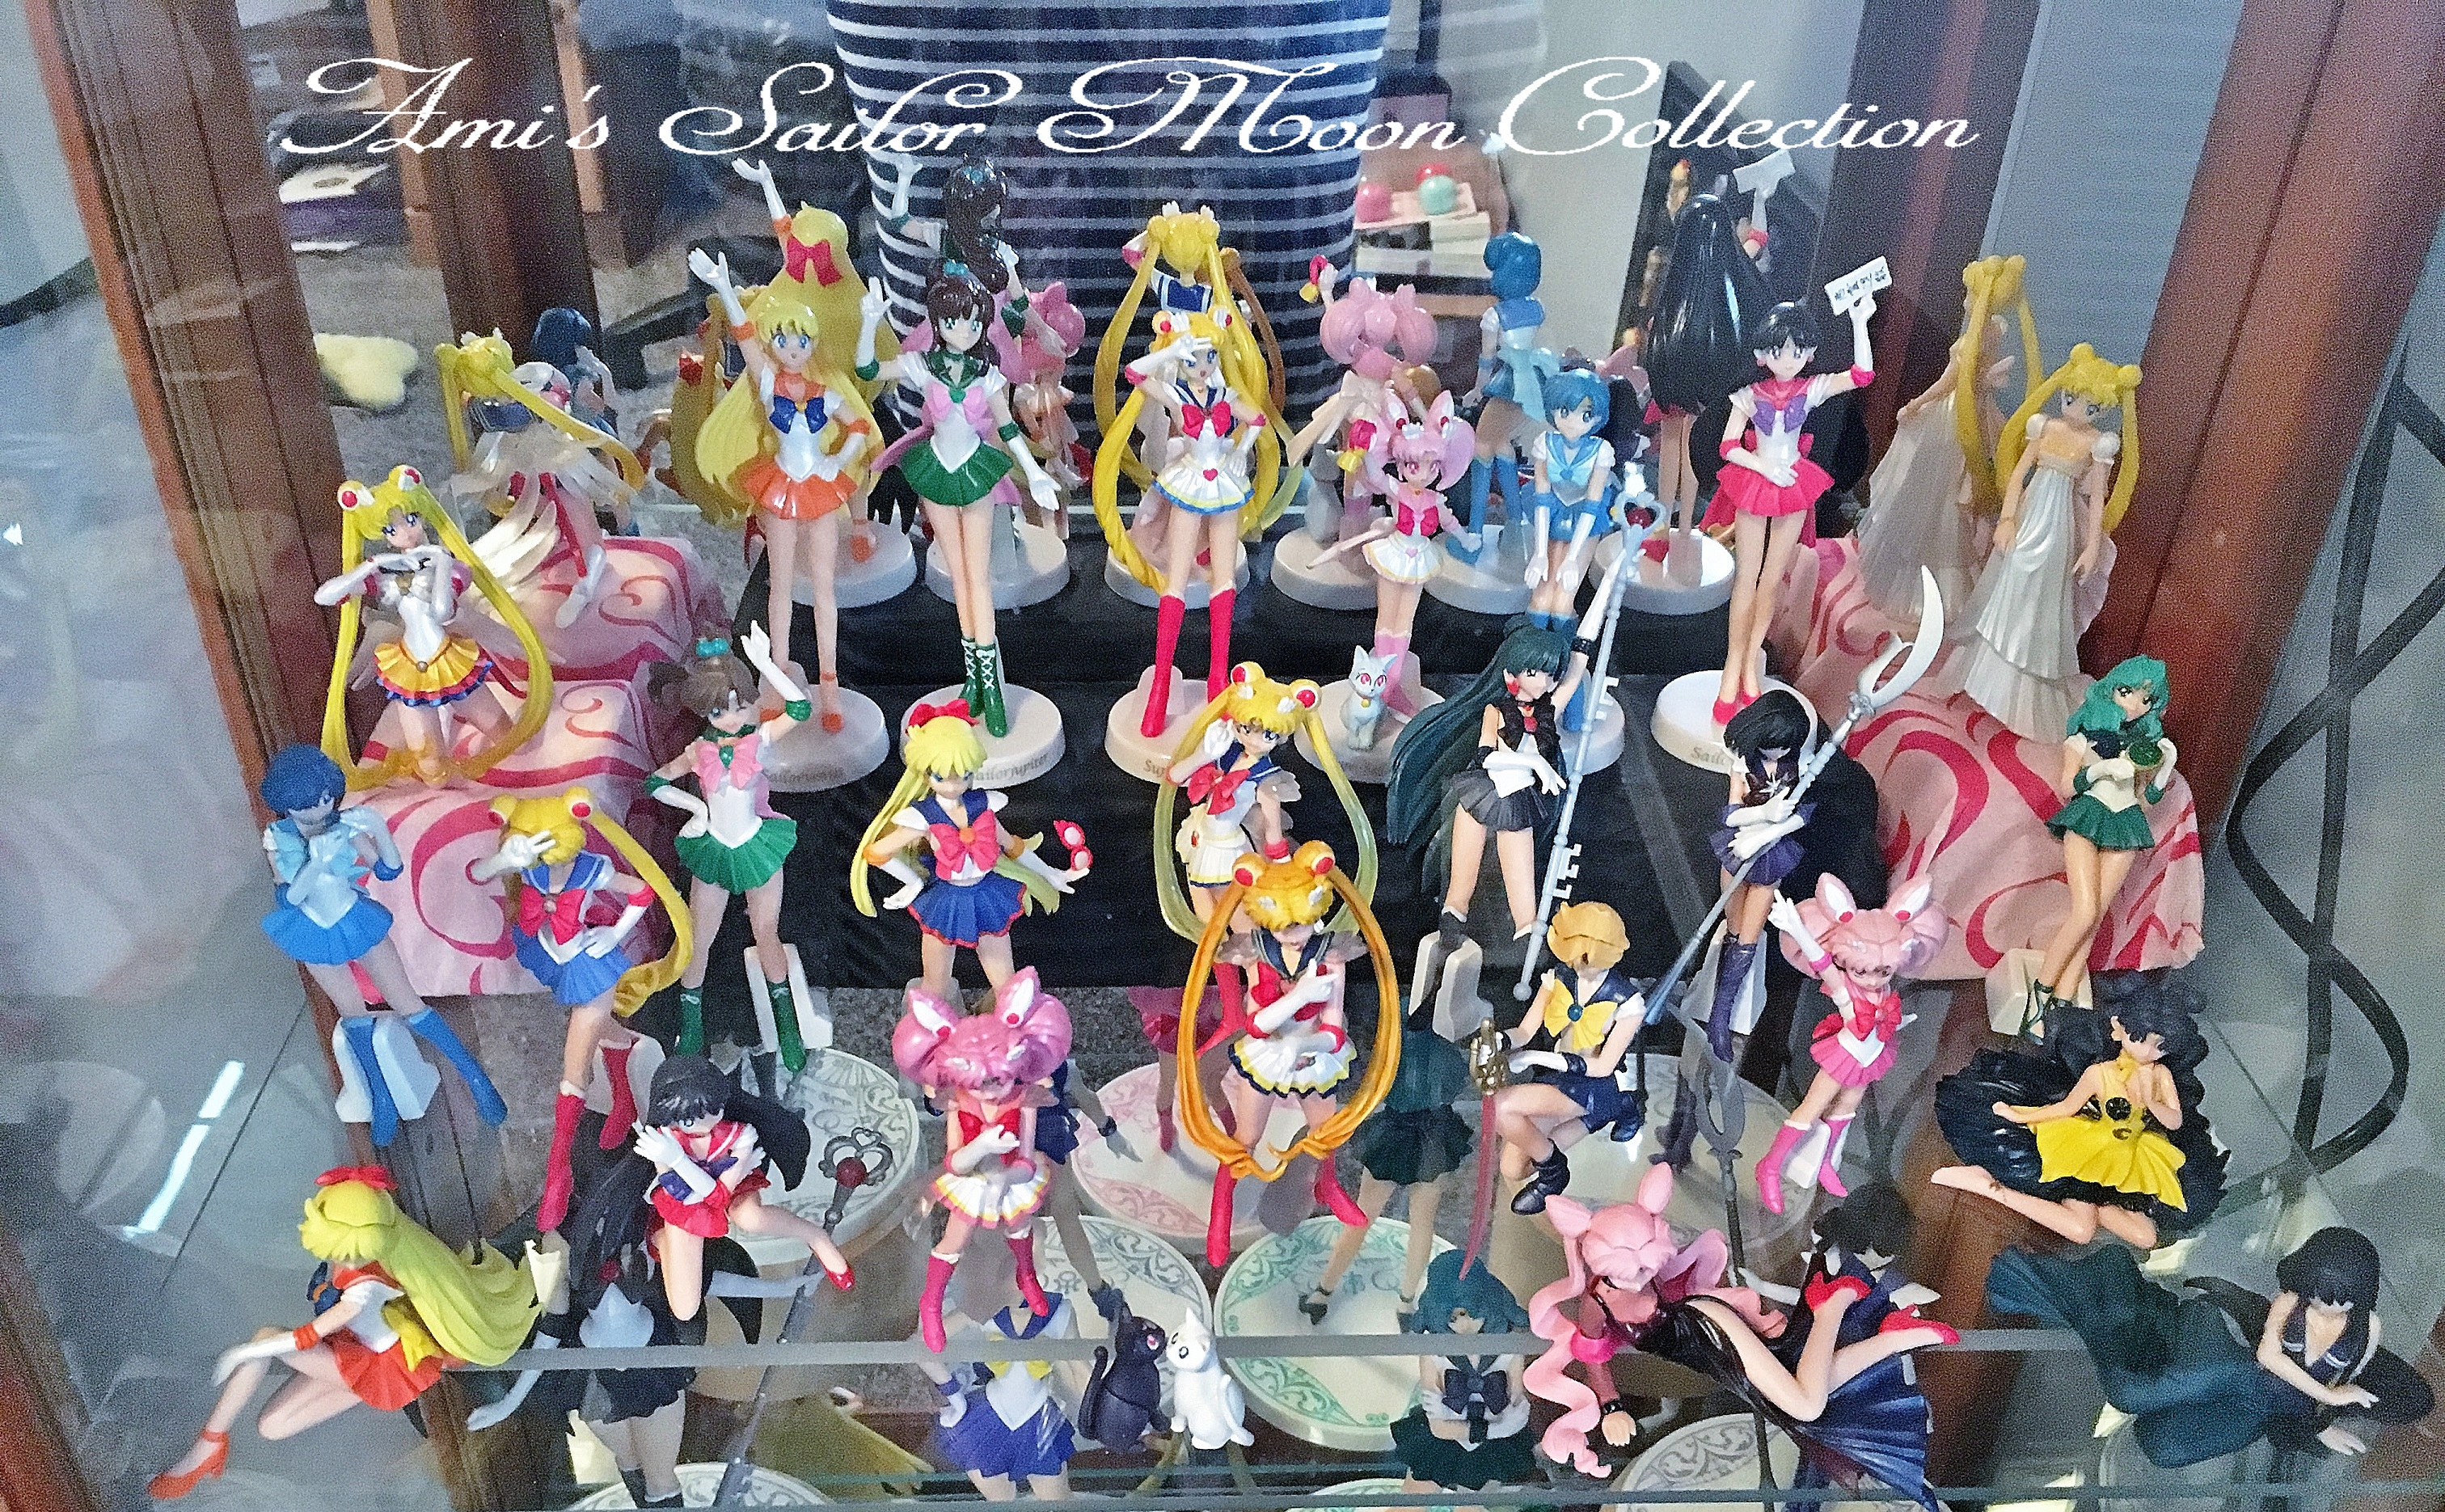 sailor_moon sailor_uranus sailor_neptune sailor_mars artemis luna hgif bandai sailor_venus sailor_pluto sailor_mercury sailor_jupiter princess_serenity bishoujo_senshi_sailor_moon bishoujo_senshi_sailor_moon_sailor_stars eternal_sailor_moon toei_animation takeuchi_naoko luna_(human_form) hgif_series_bishoujo_senshi_sailor_moon_world_5 sailor_chibi_moon super_sailor_moon diana black_lady sailor_v sailor_saturn mistress_9 bishoujo_senshi_sailor_moon_supers super_sailor_jupiter super_sailor_mercury super_sailor_mars super_sailor_venus bishoujo_senshi_sailor_moon_r hgif_series_bishoujo_senshi_sailor_moon_world_4 gekijouban_bishoujo_senshi_sailor_moon_s sailor_moon_world hgif_series_bishoujo_senshi_sailor_moon_world_3 hgif_series_bishoujo_senshi_sailor_moon_world_2 hgif_series_bishoujo_senshi_sailor_moon_world doll_collection_~sailor_moon~ bishoujo_senshi_sailor_moon_s super_sailor_chibi_moon